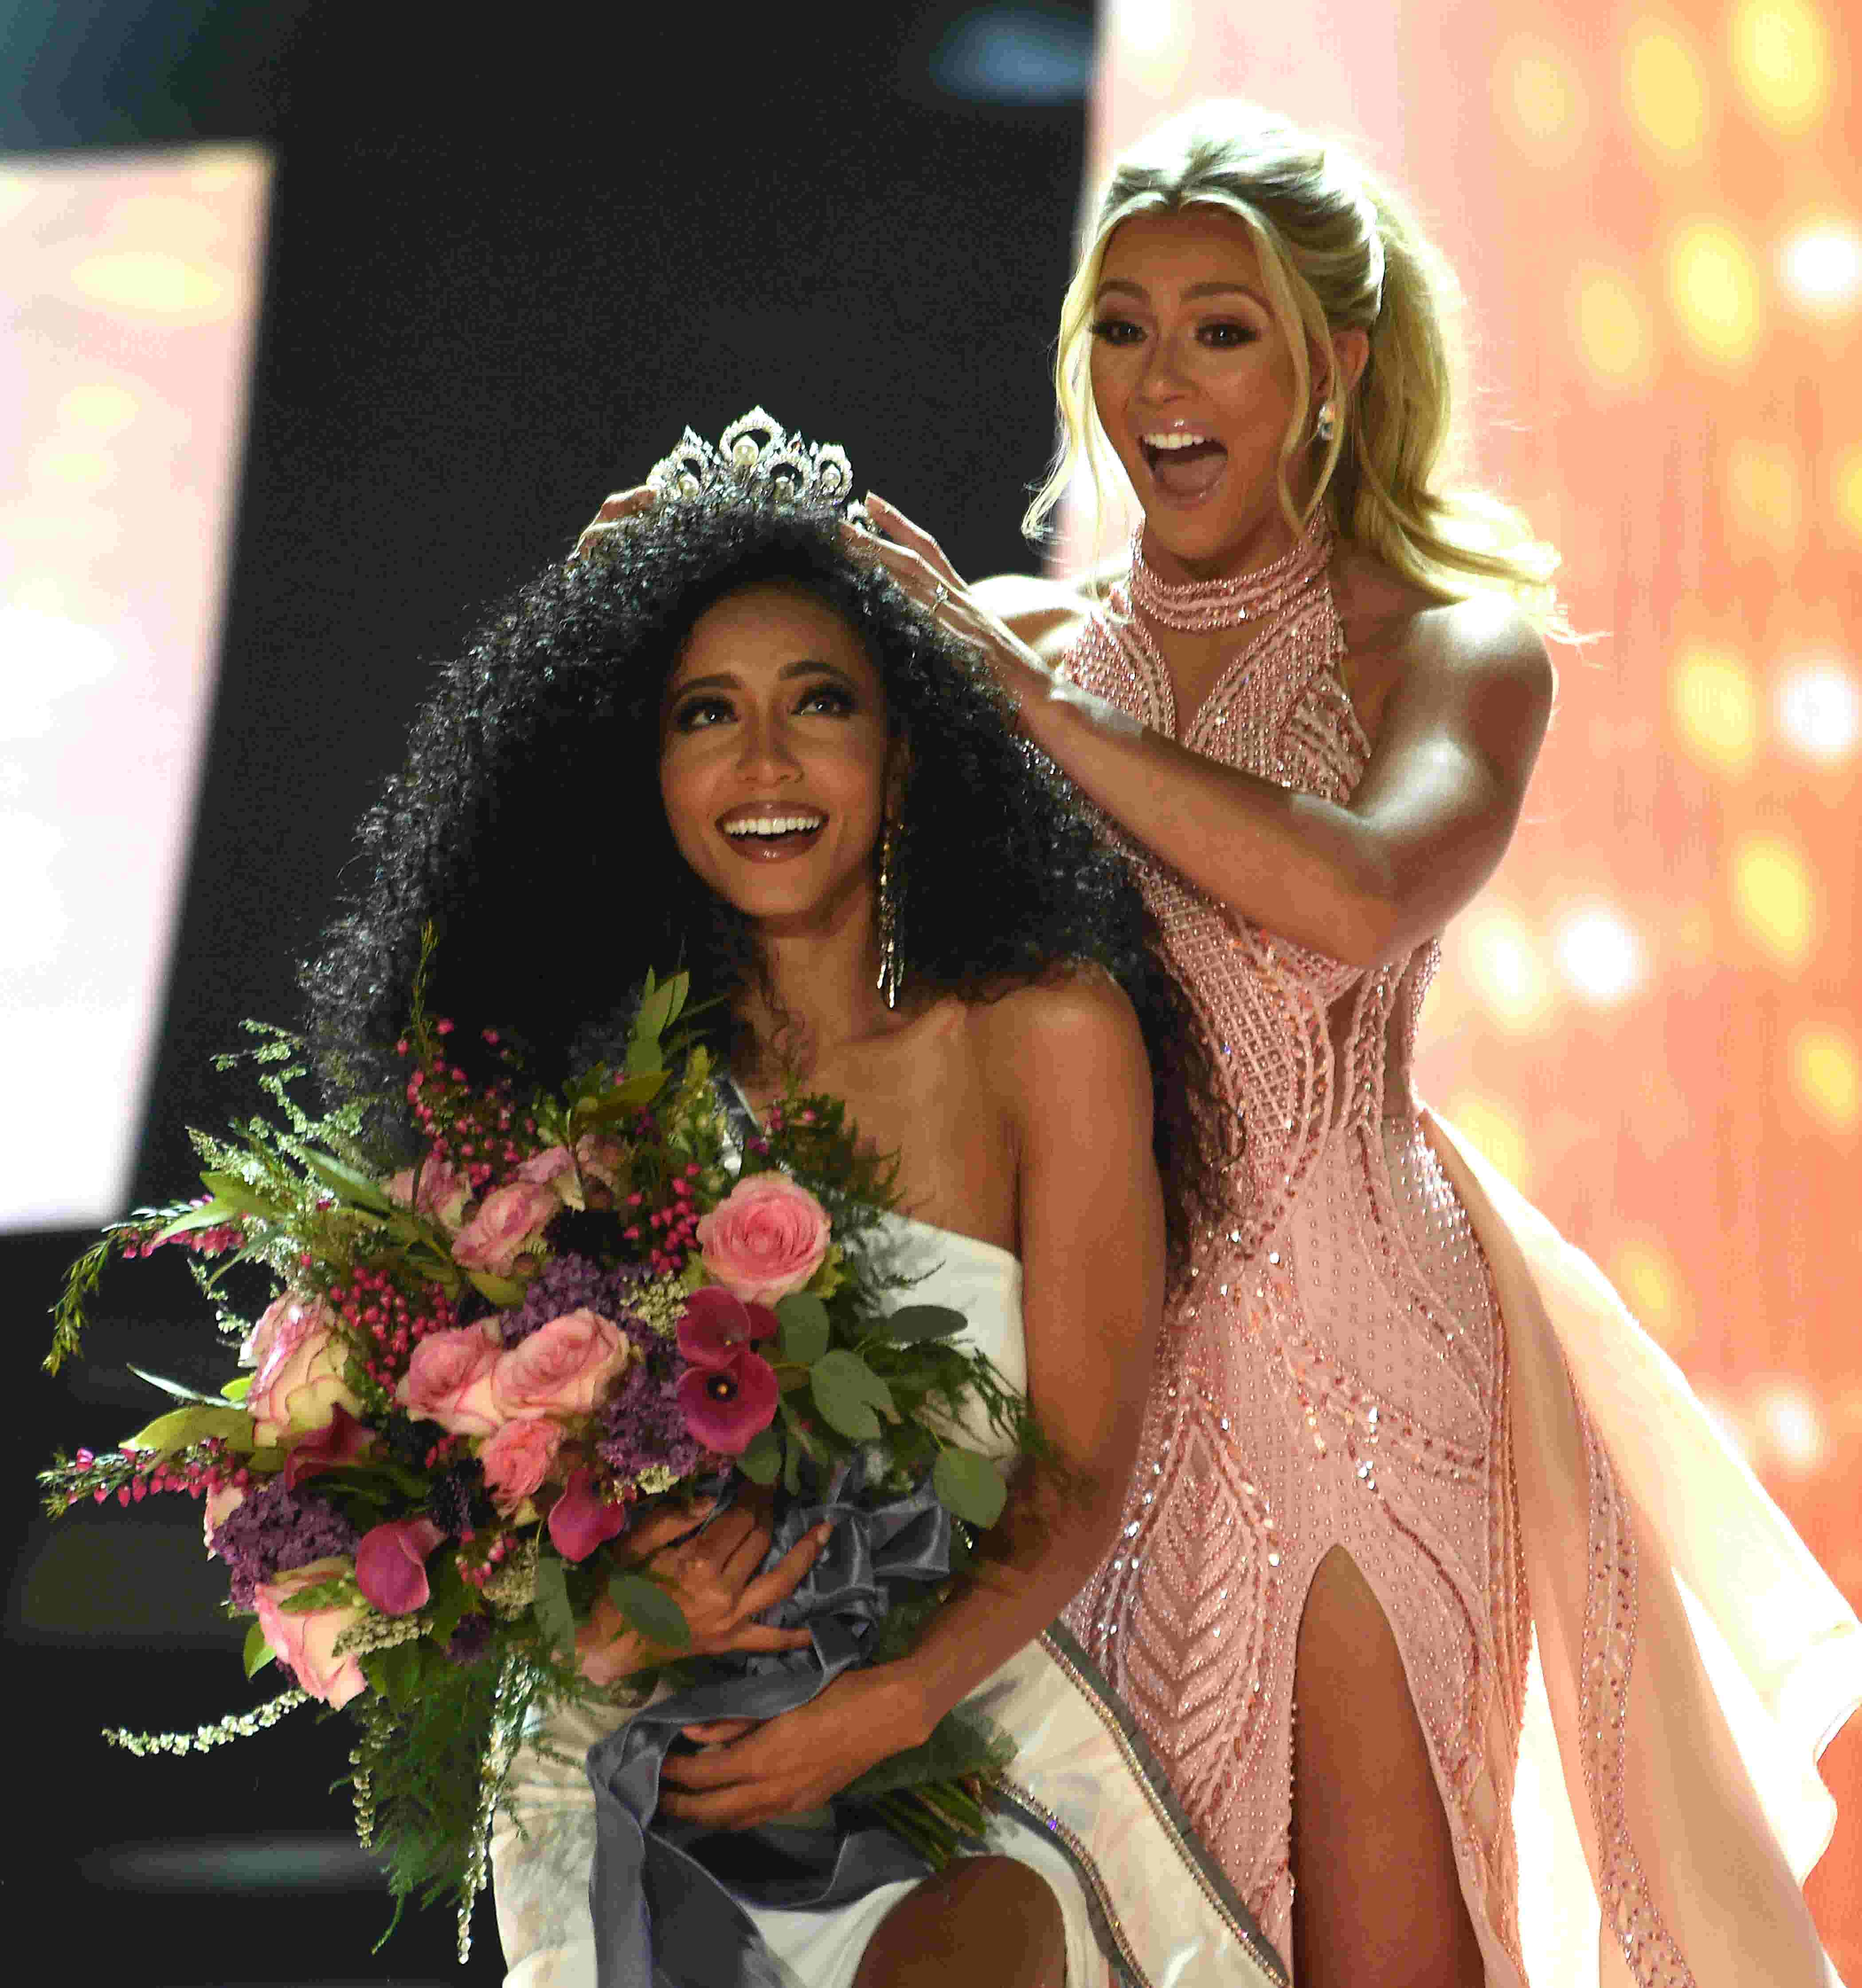 Watch: Cheslie Kryst crowned Miss USA in Reno